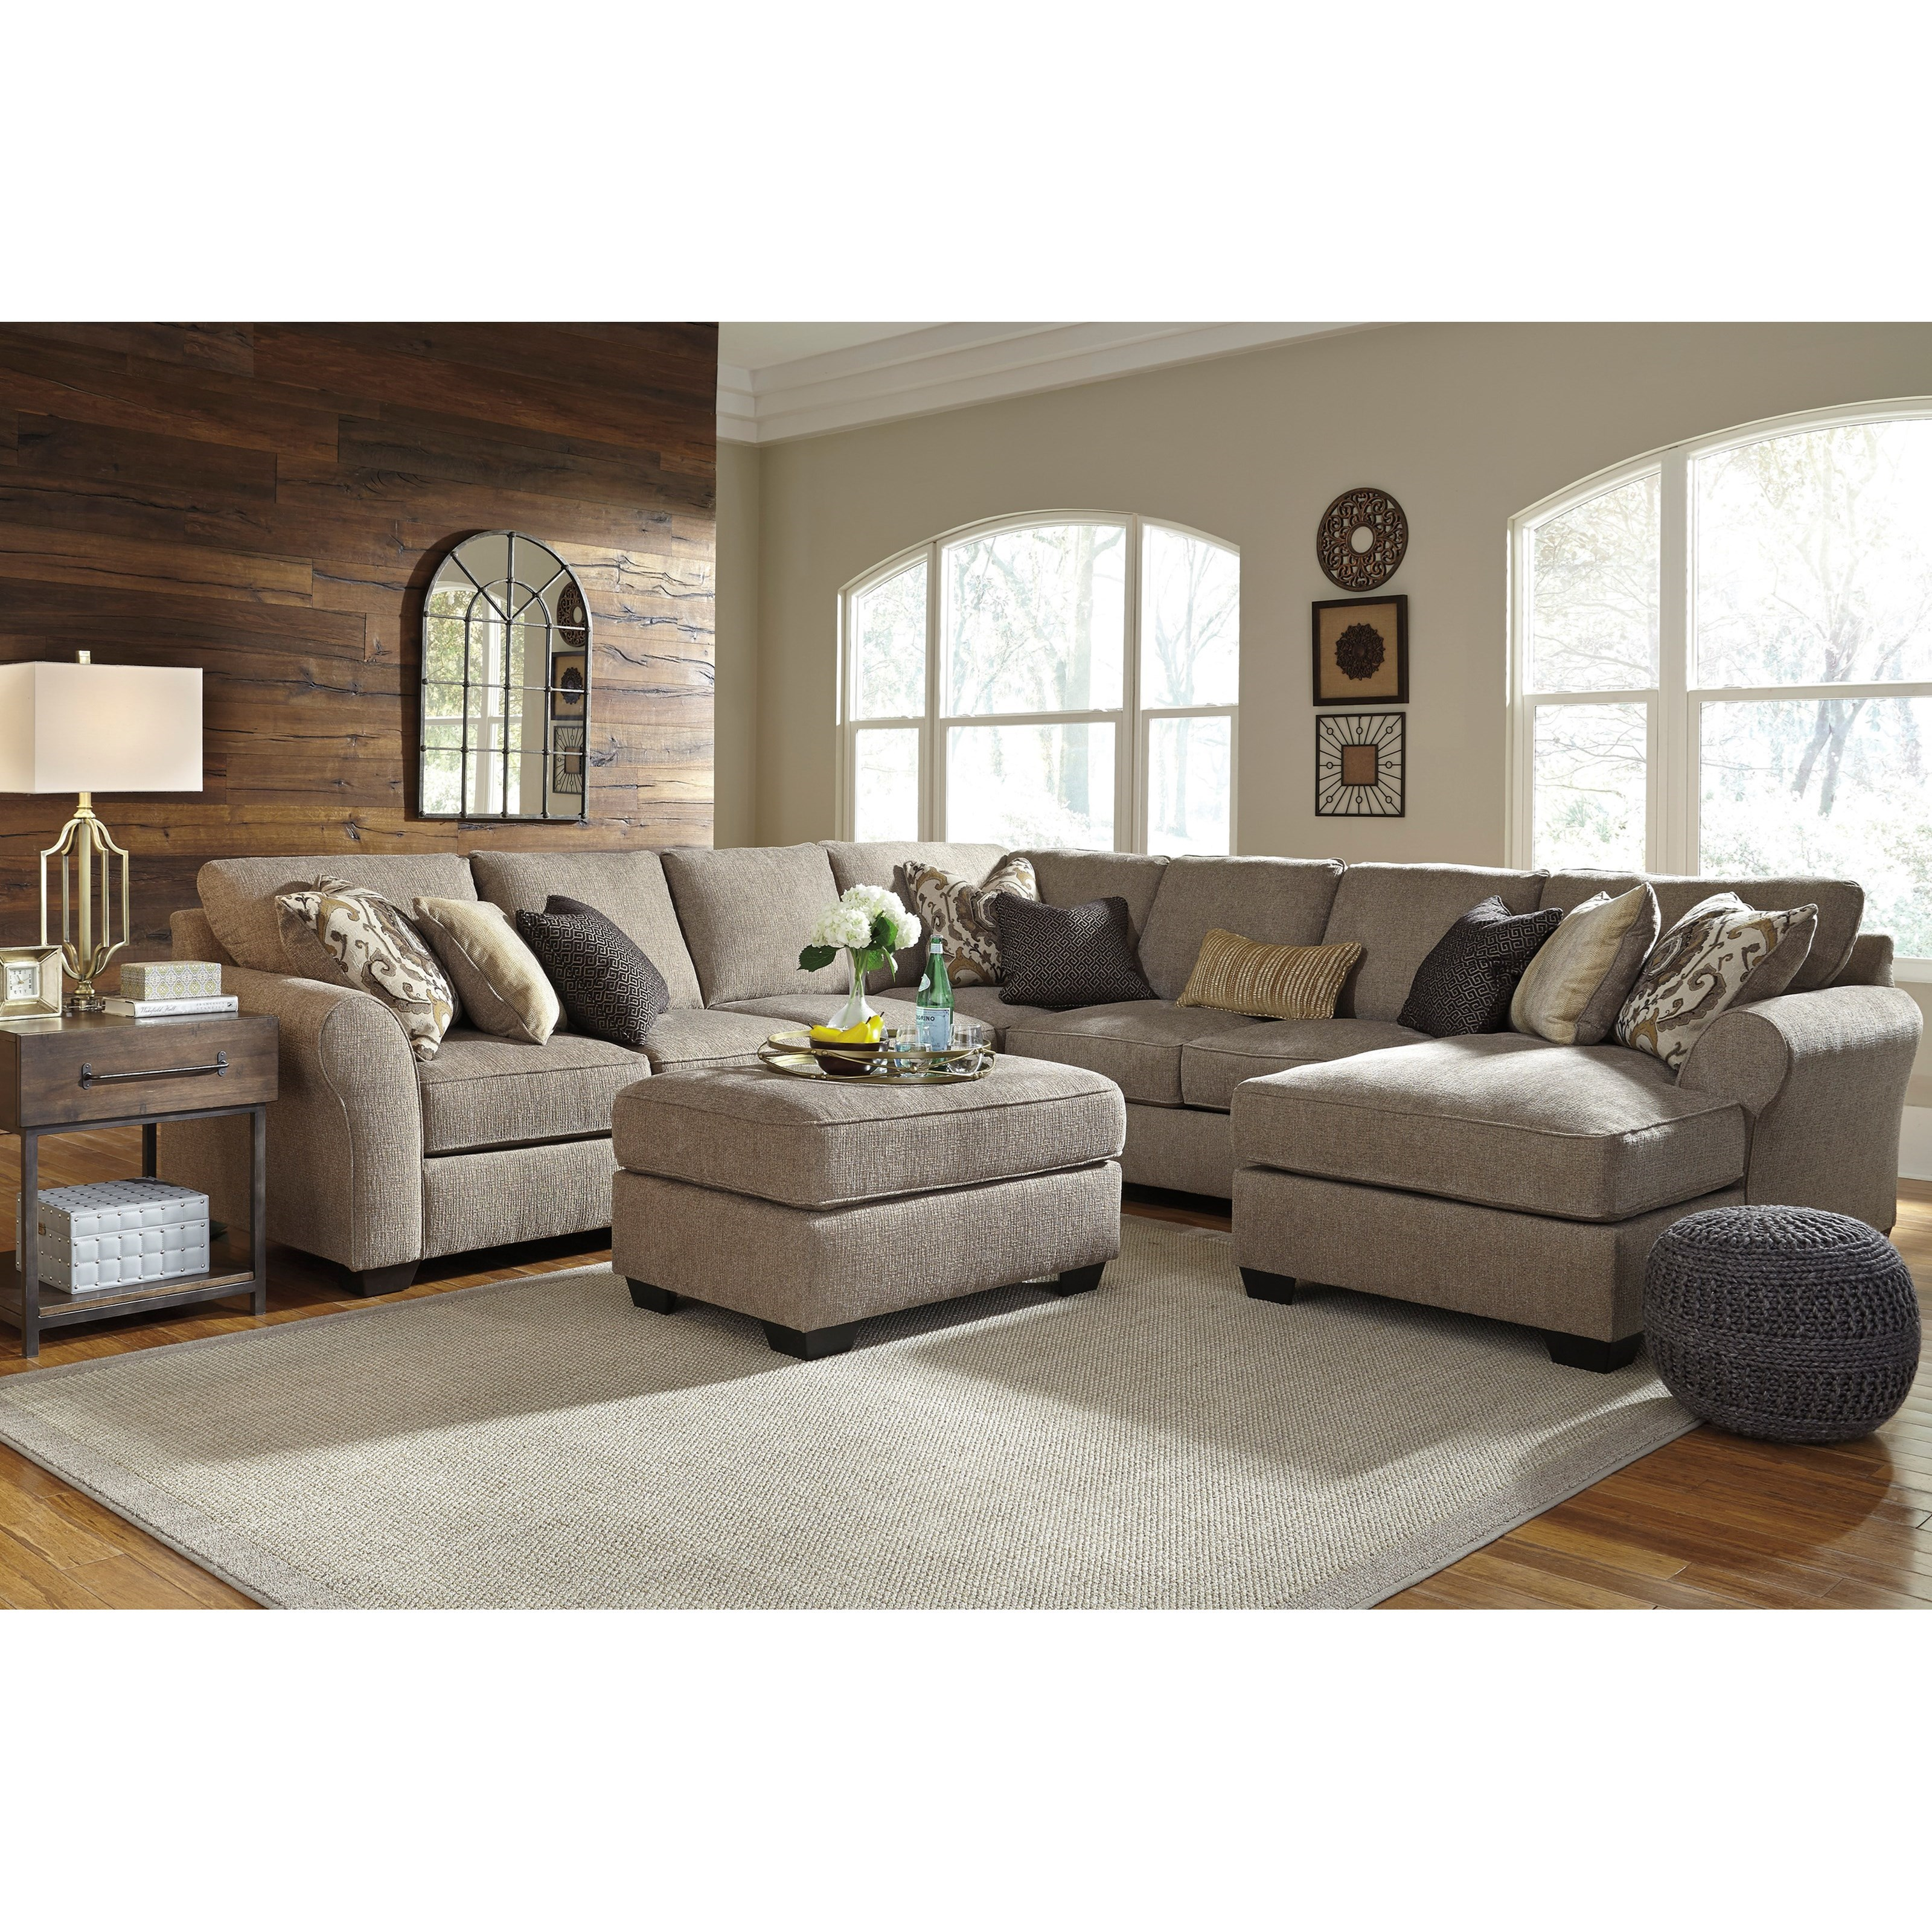 Pantomine 5-Piece Sectional with Ottoman by Benchcraft at Northeast Factory Direct